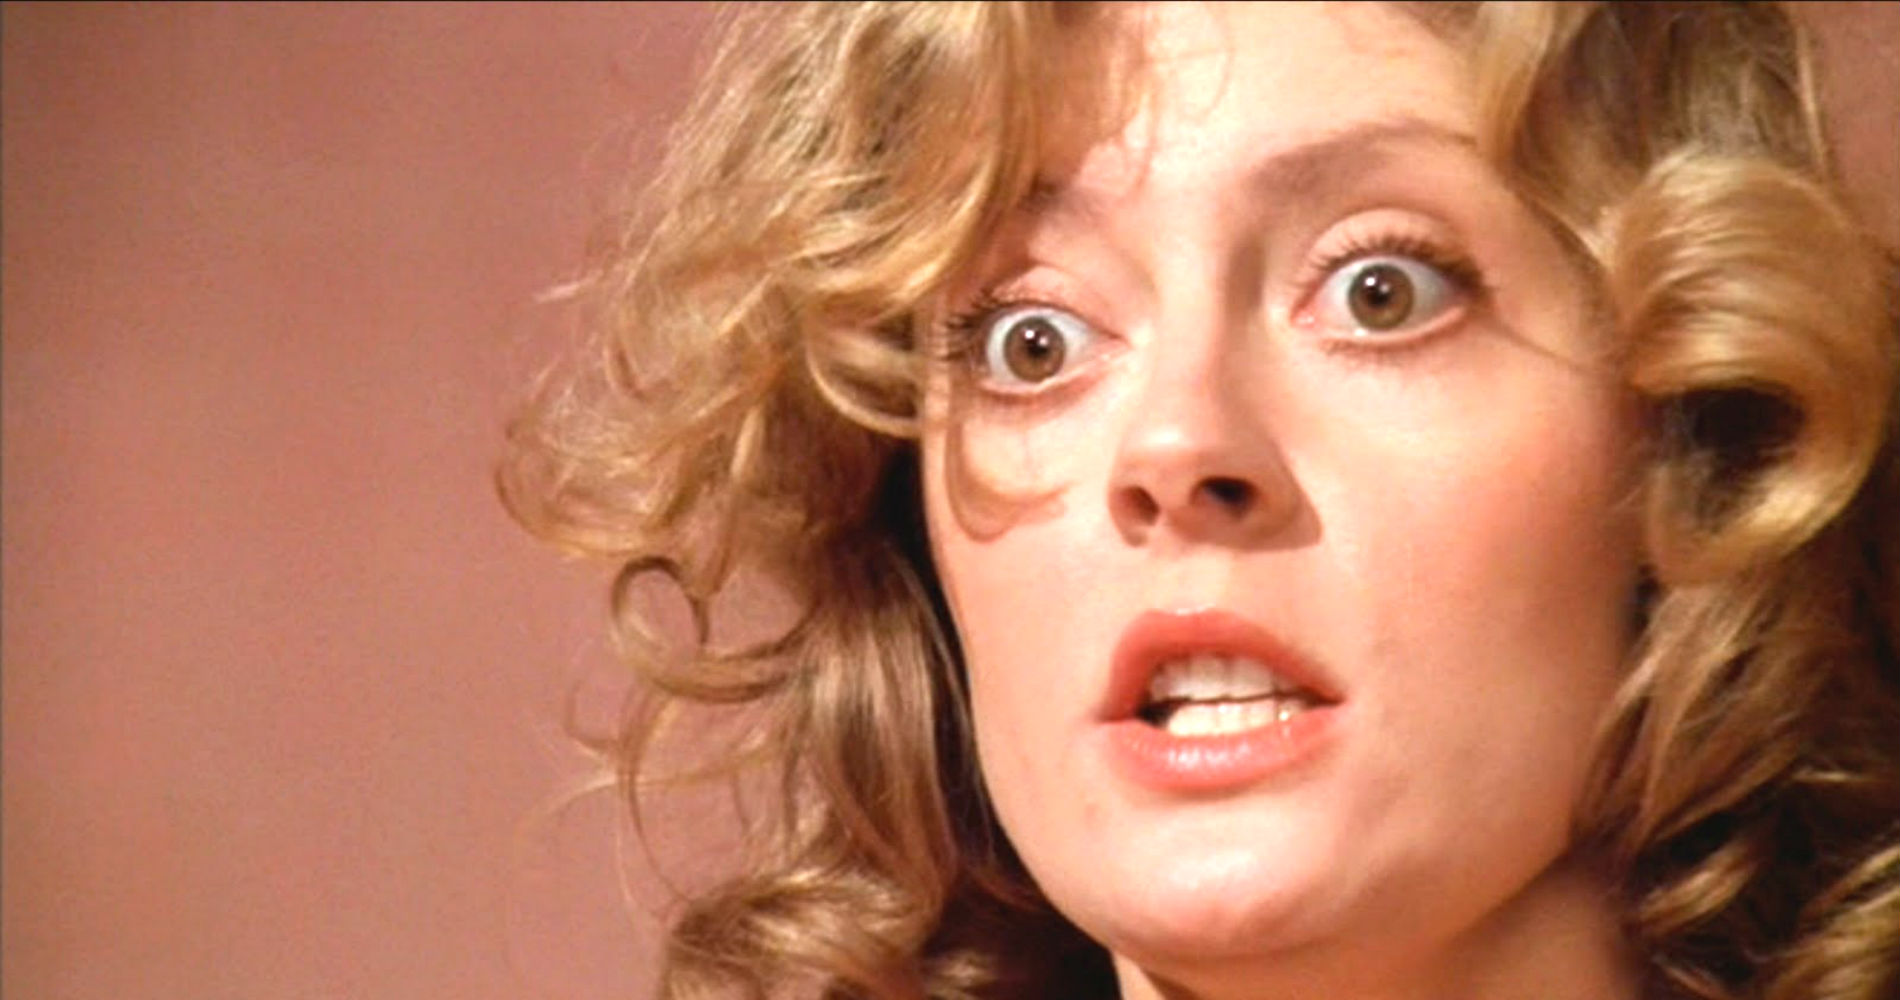 Susan Sarandon, rocky horror, scared, woman, blonde, face